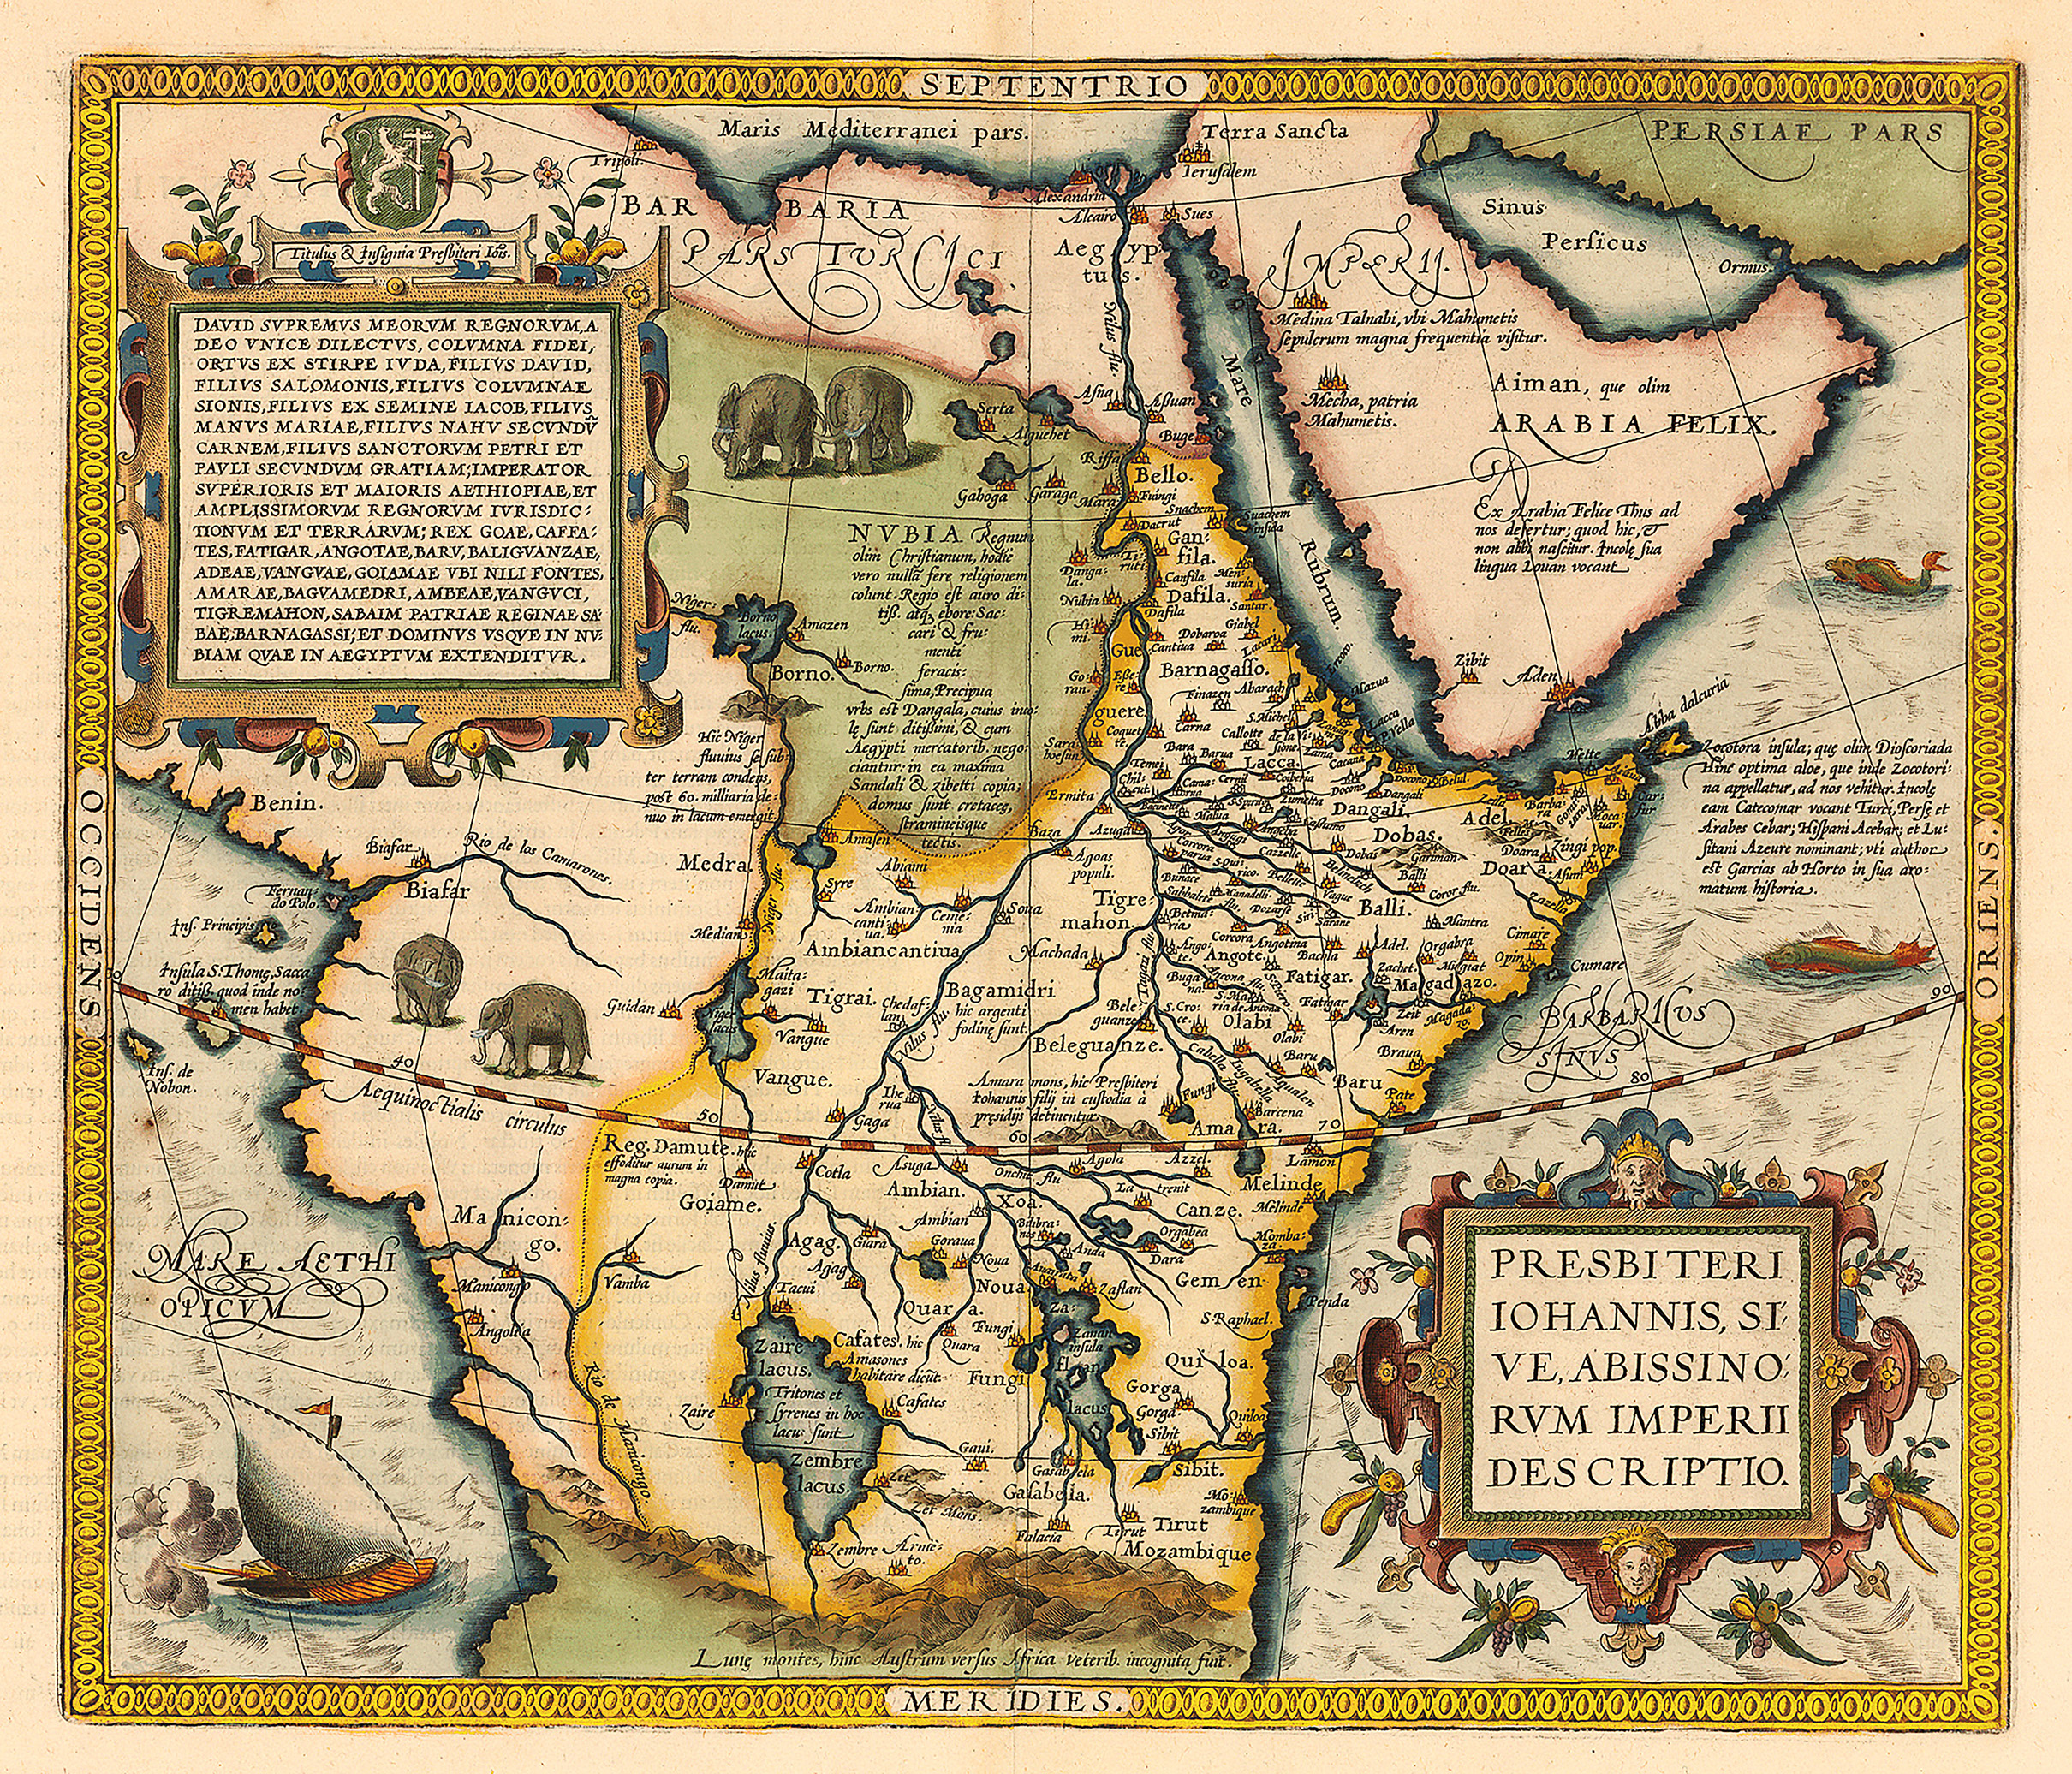 map of Prester John by Ortelius. A map of Prester John's kingdom as Ethiopia 1573